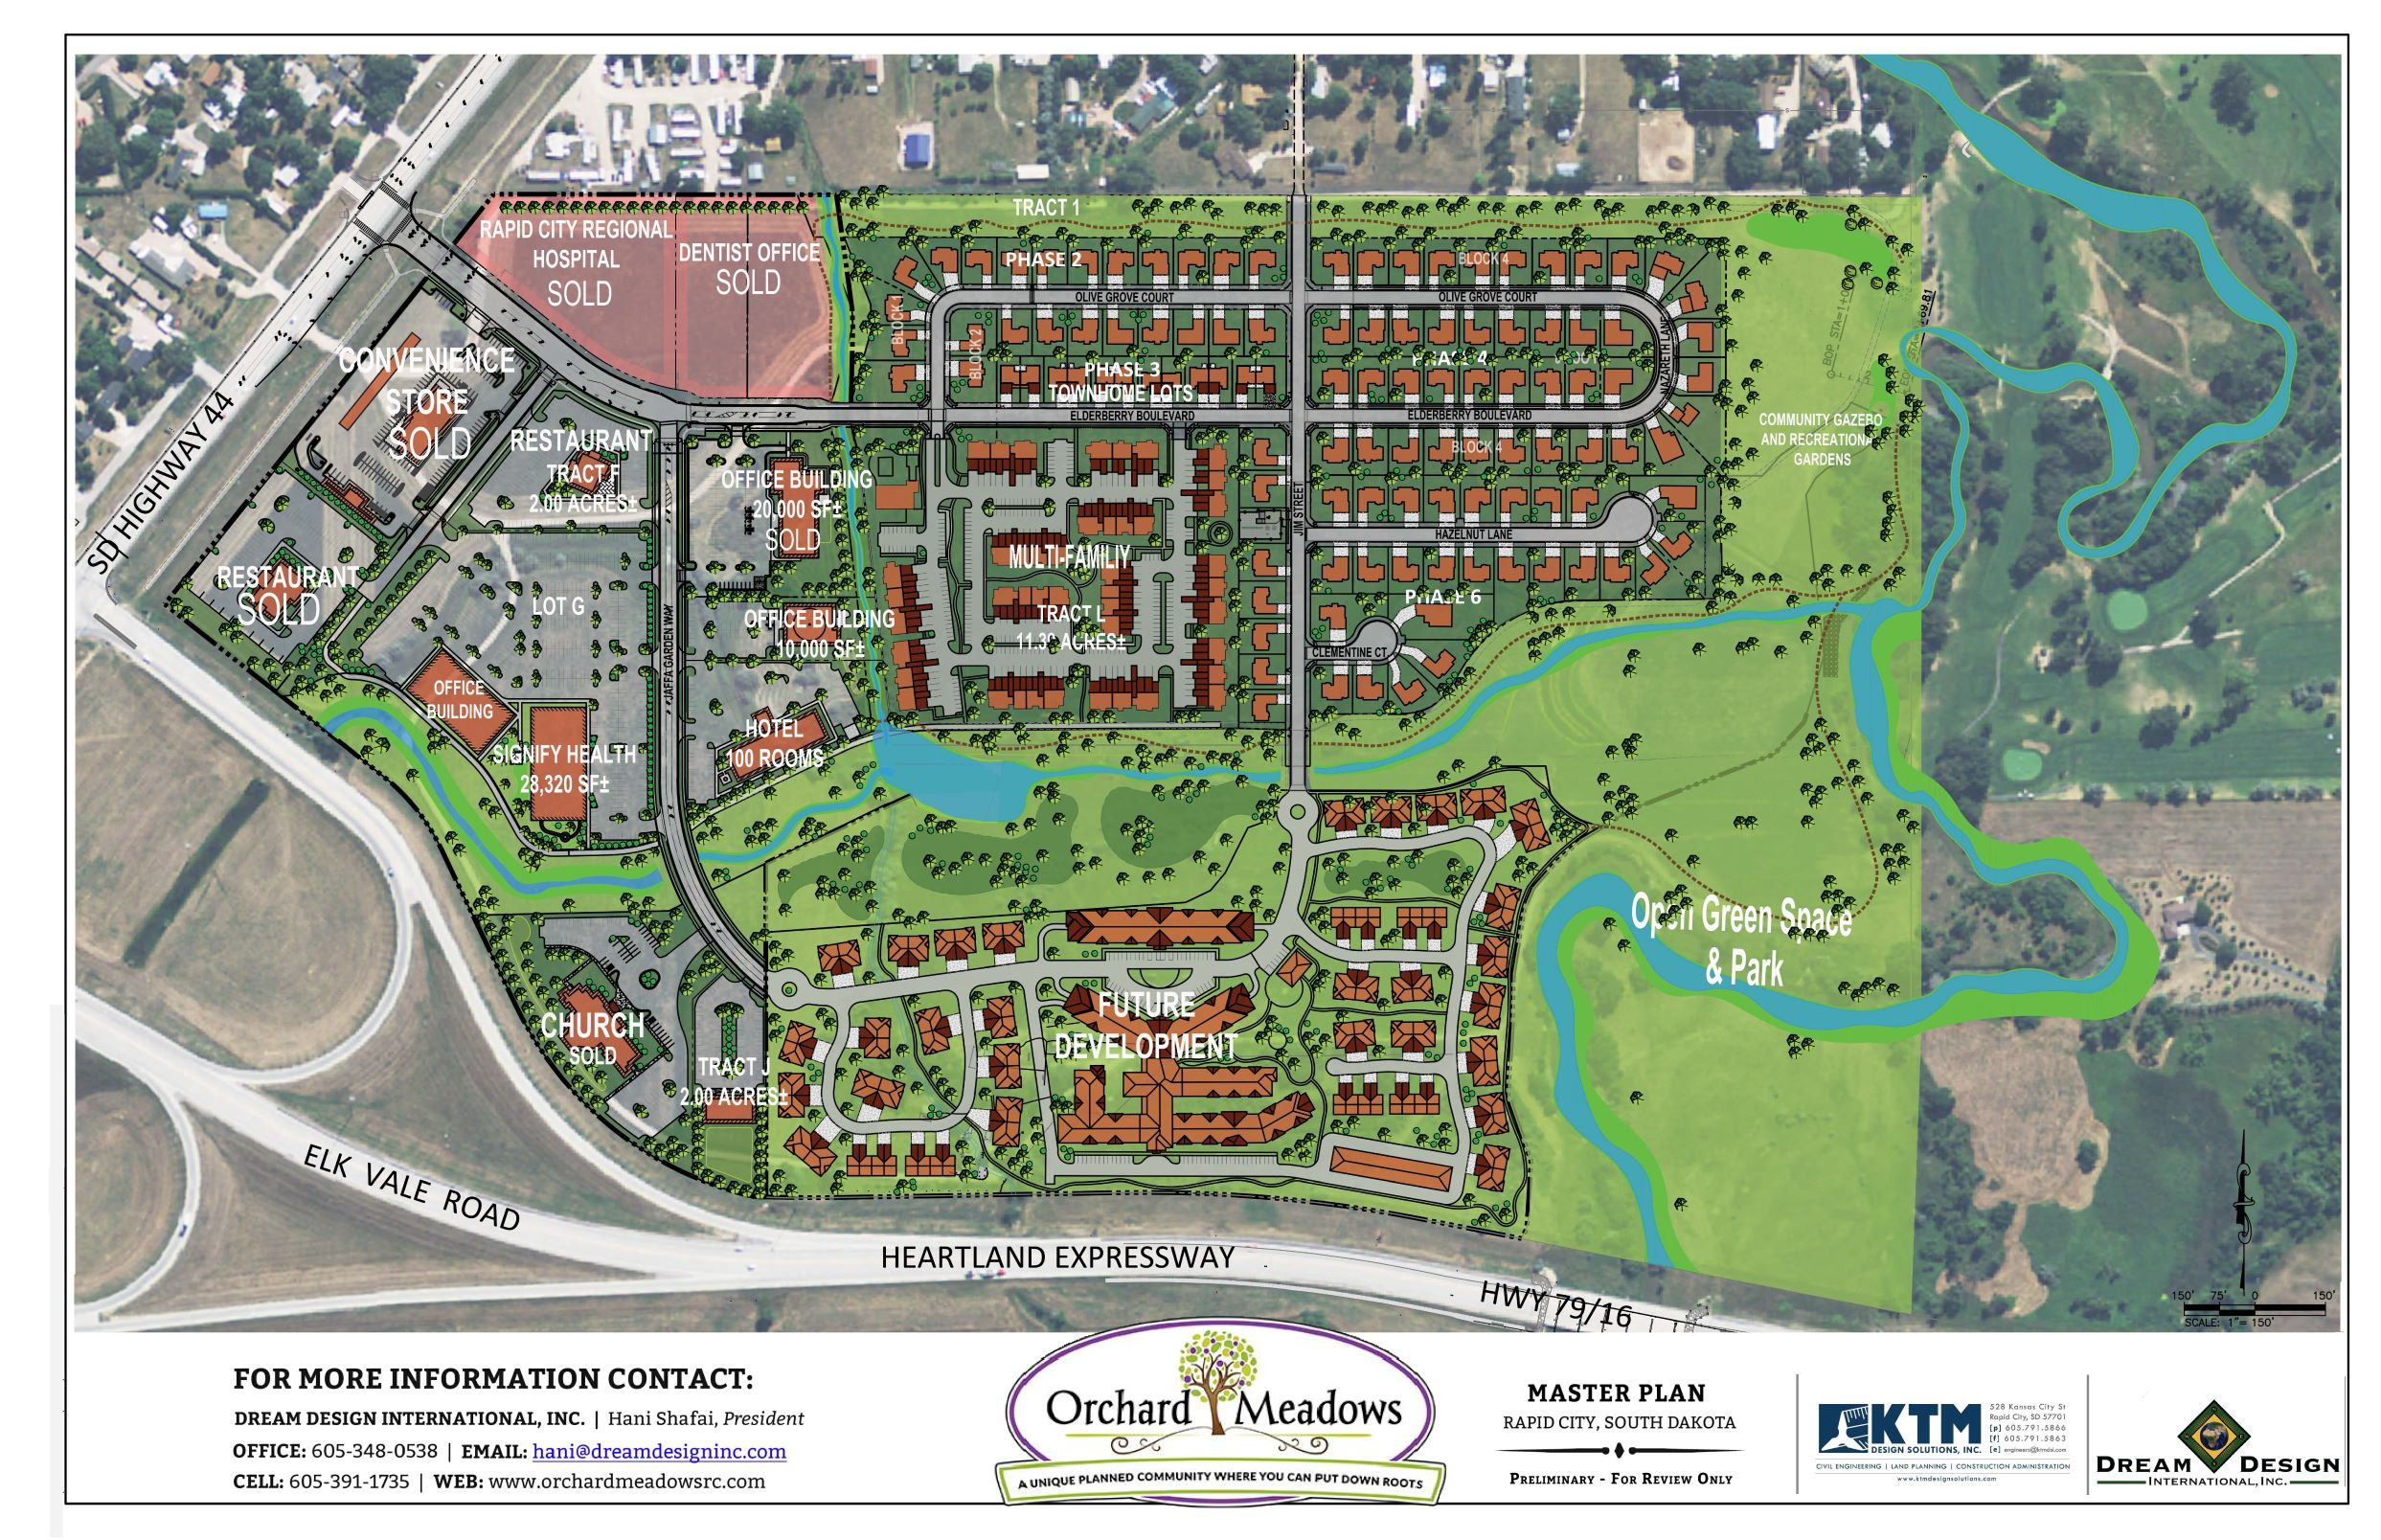 Orchard Meadows Commercial Master Plan - September 3, 2019 - 4mp